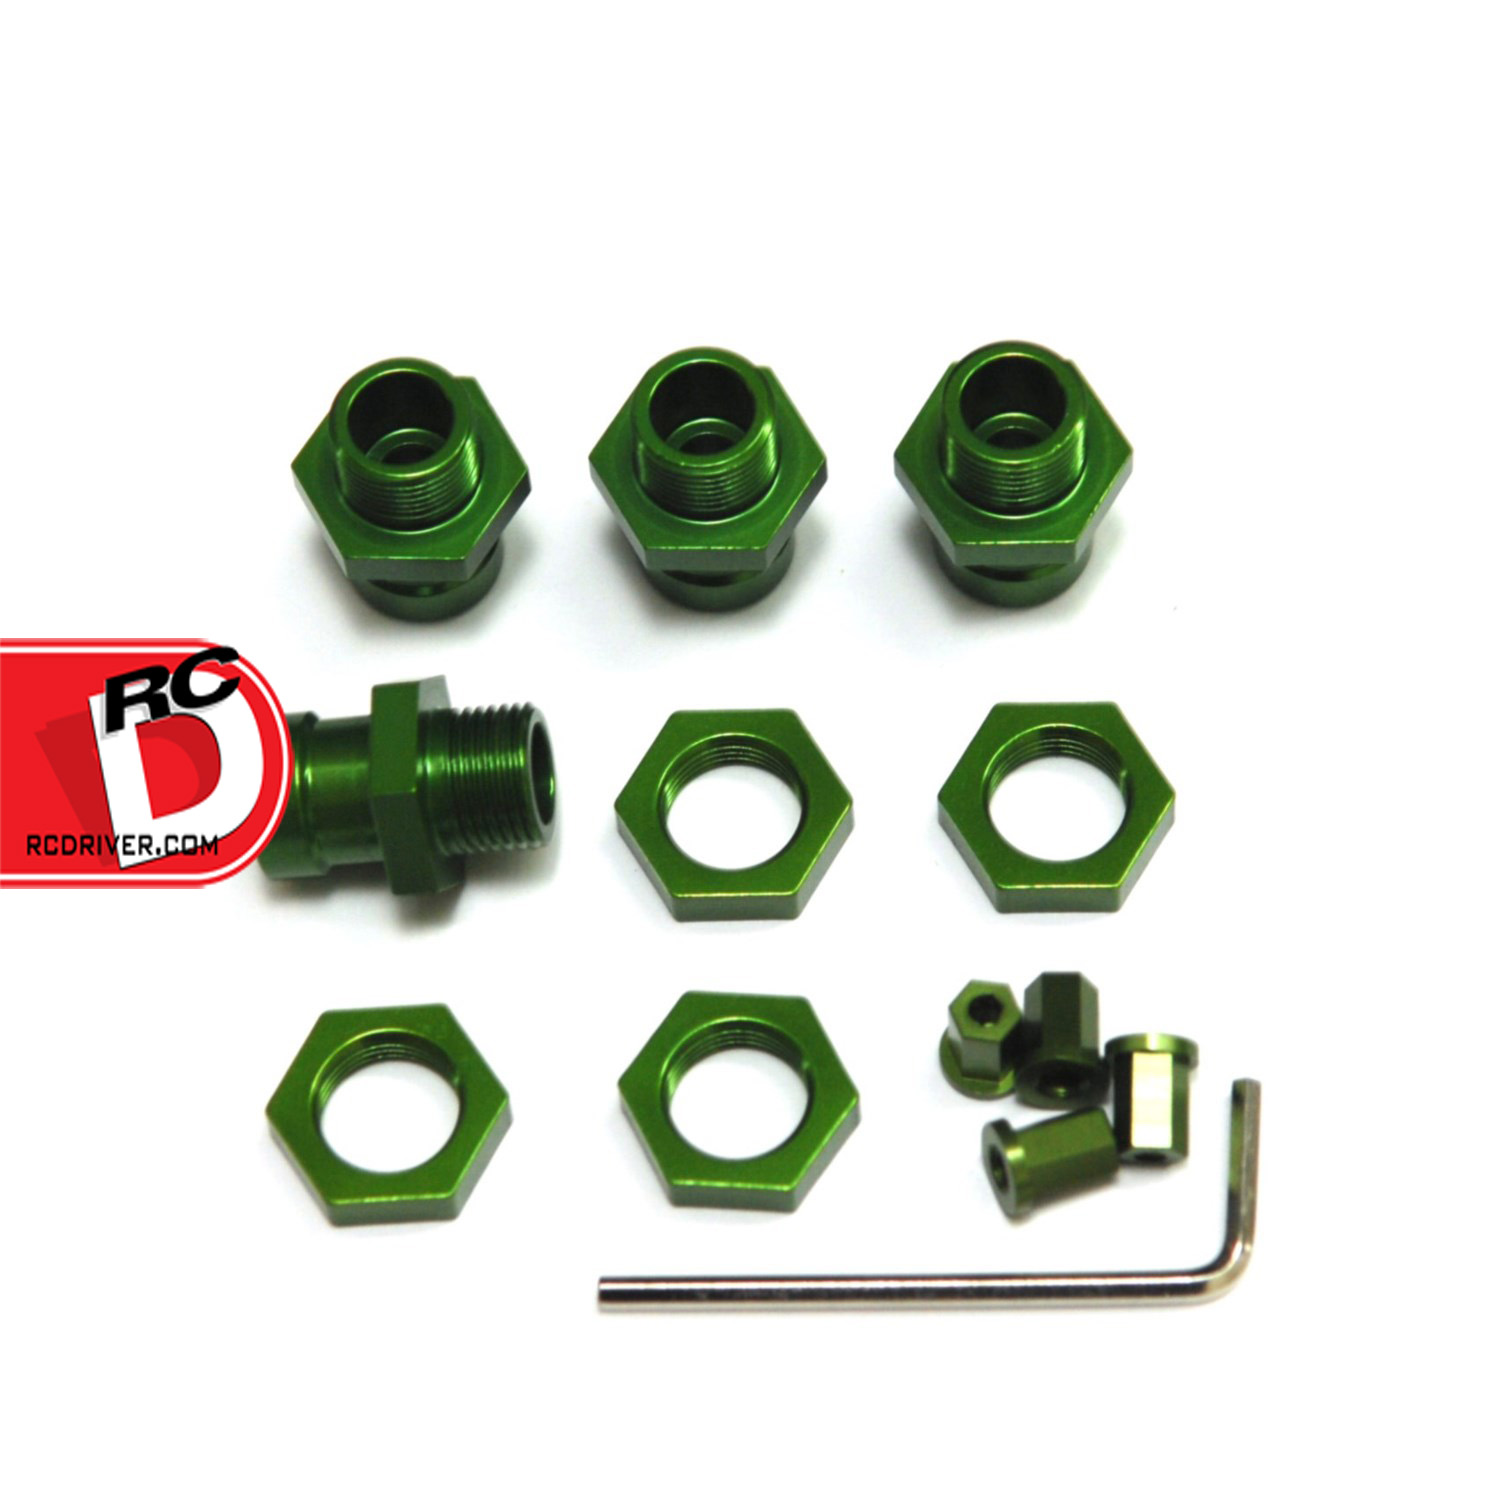 STRC CNC Machined Aluminum 17mm Hex Adapter Conversion Kit for Axial Wraith/Deadbolt